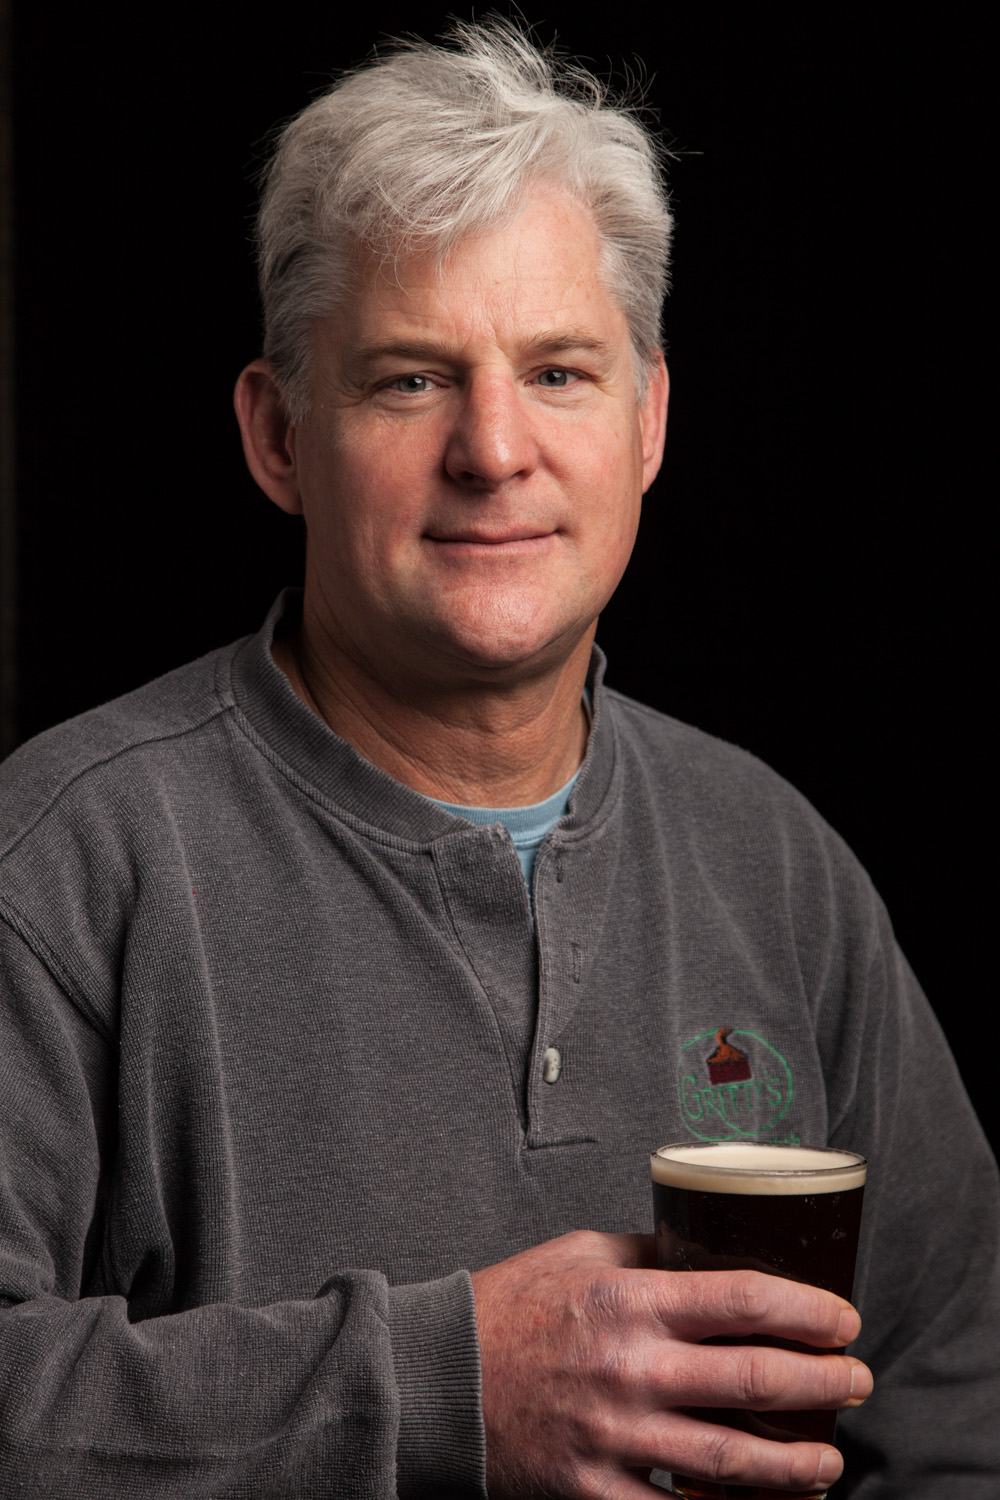 Richard Pfeffer, Founding Partner of Gritty McDuffs in Portland, ME Established in 1988